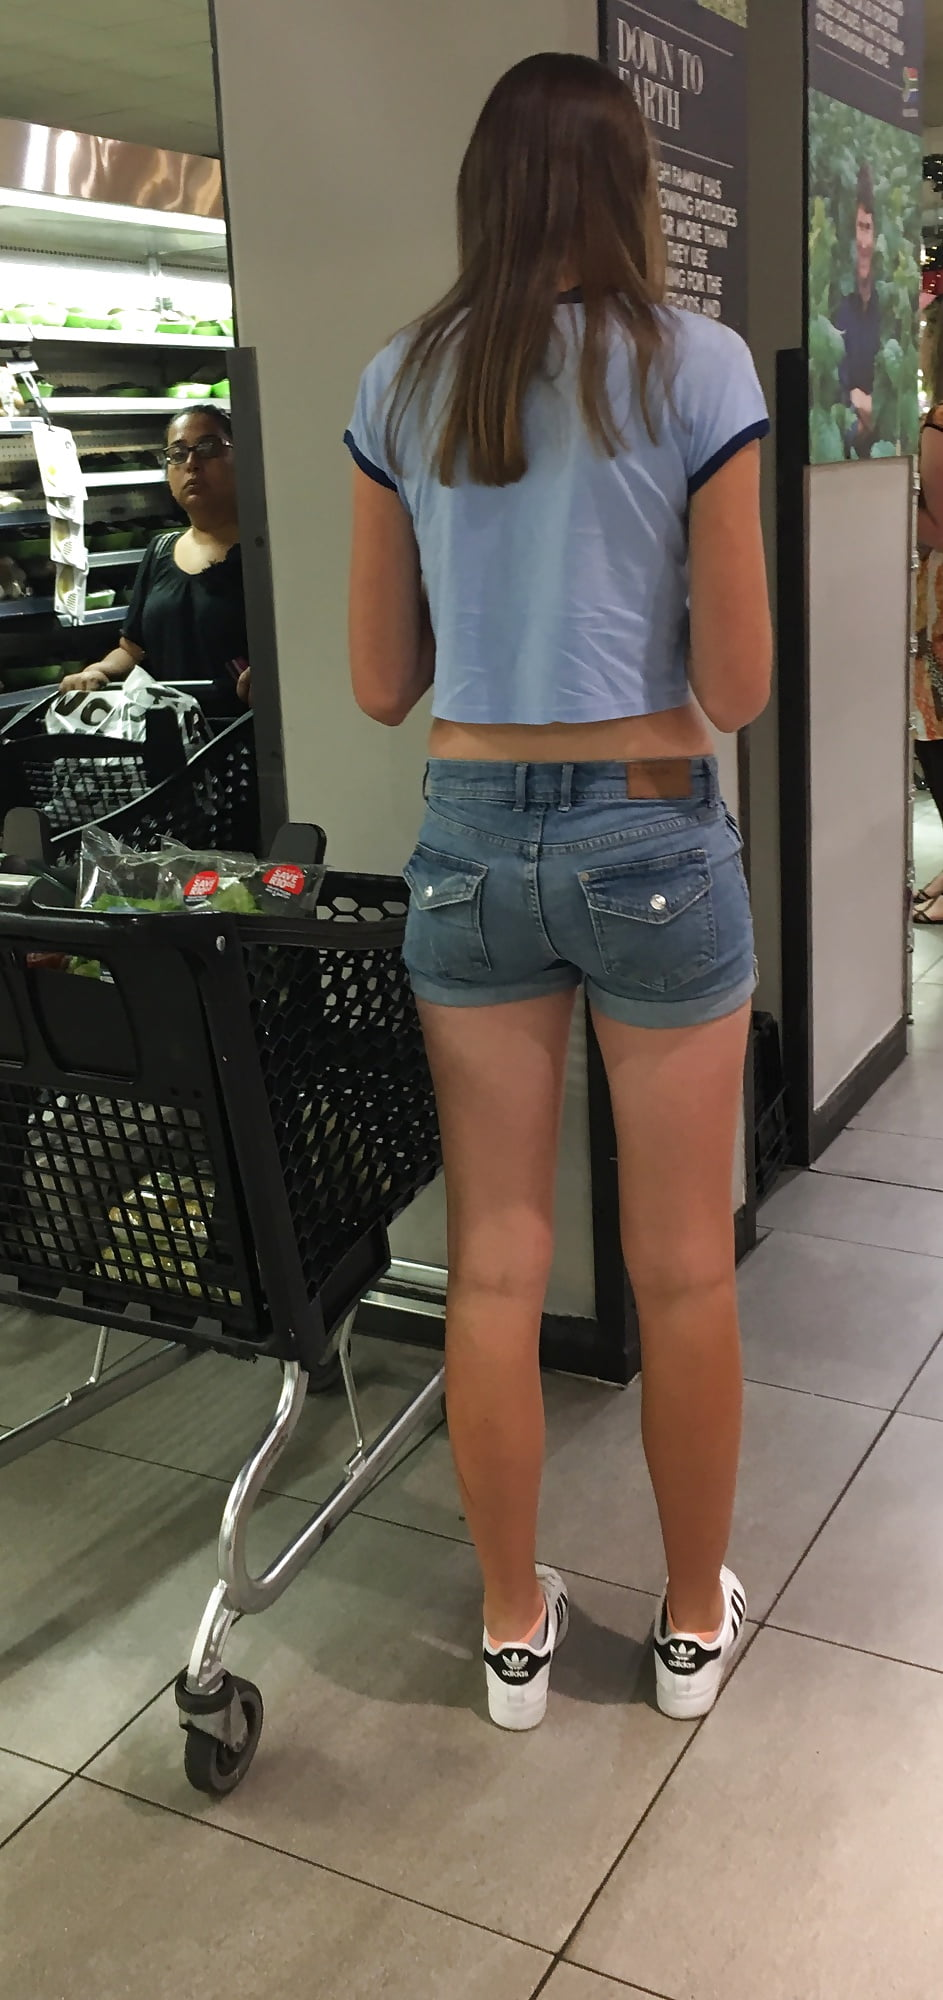 18 yr Tall and tight and not camera shy mall teen